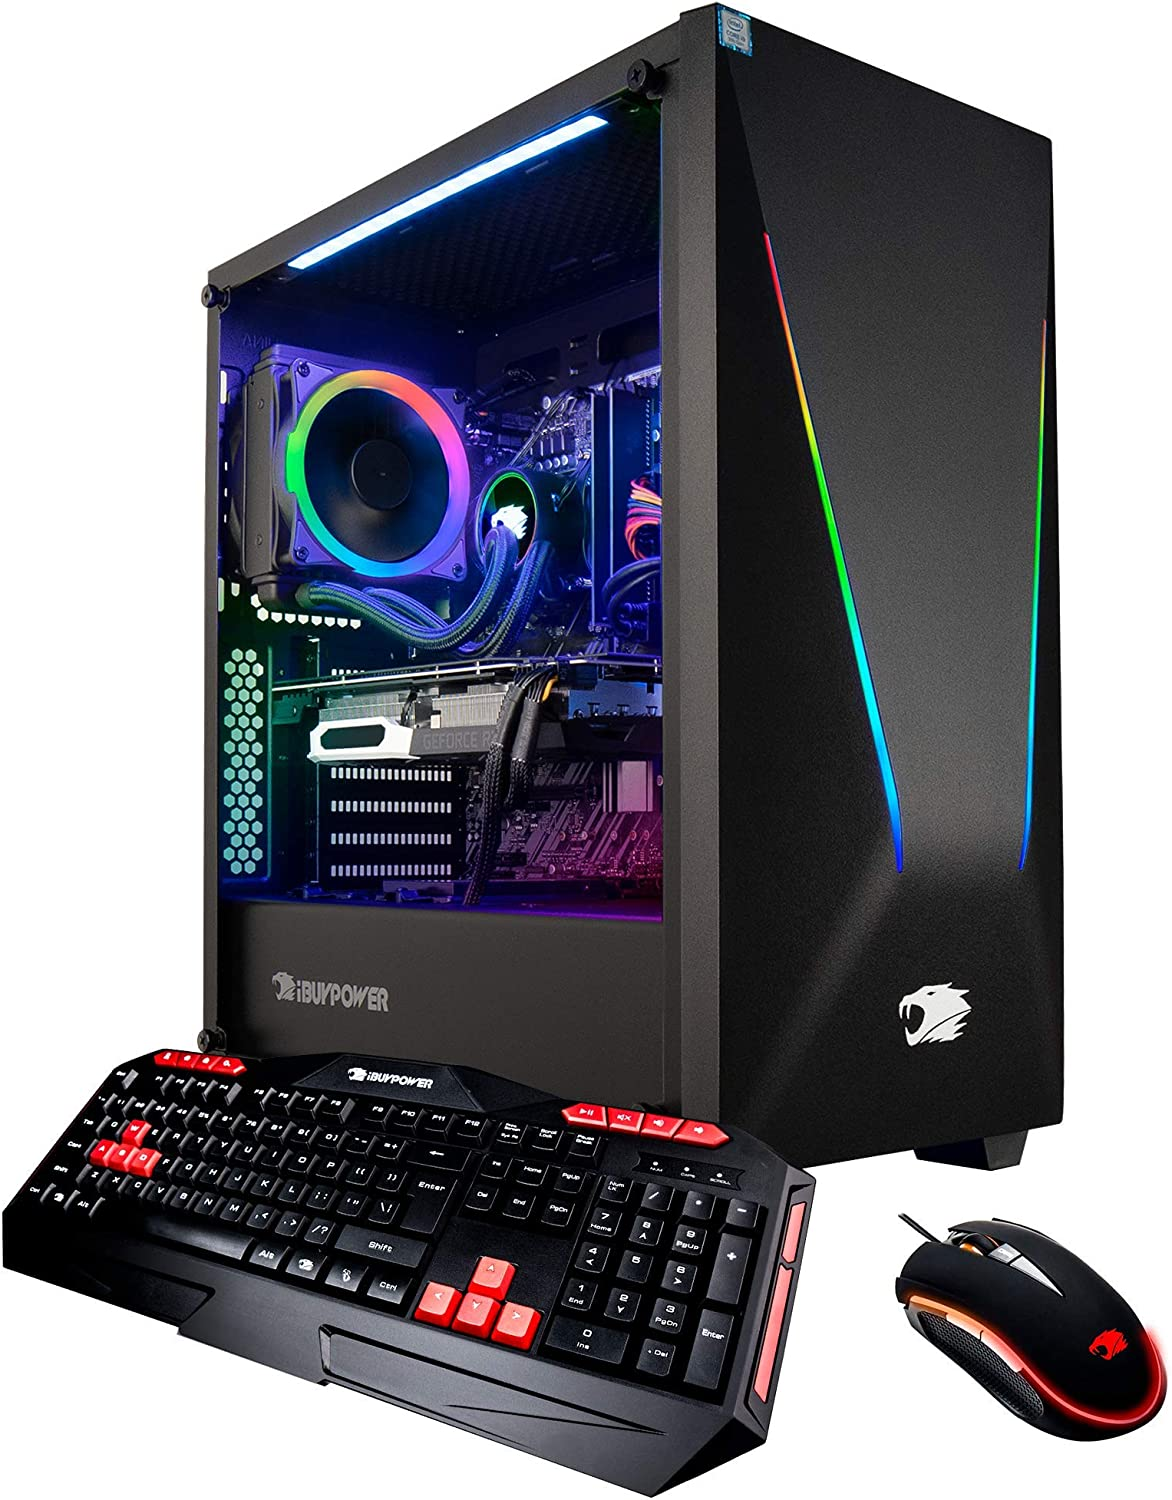 iBUYPOWER Pro Gaming PC Computer Desktop Intel i7-9700k 8-Core 3.6 GHz, Geforce RTX 2070 8GB, 16GB DDR4, 1TB HDD, 240GB SSD, Z370, Liquid Cooling, WiFi Ready, Windows 10, VR Ready (Trace 9230, Black)